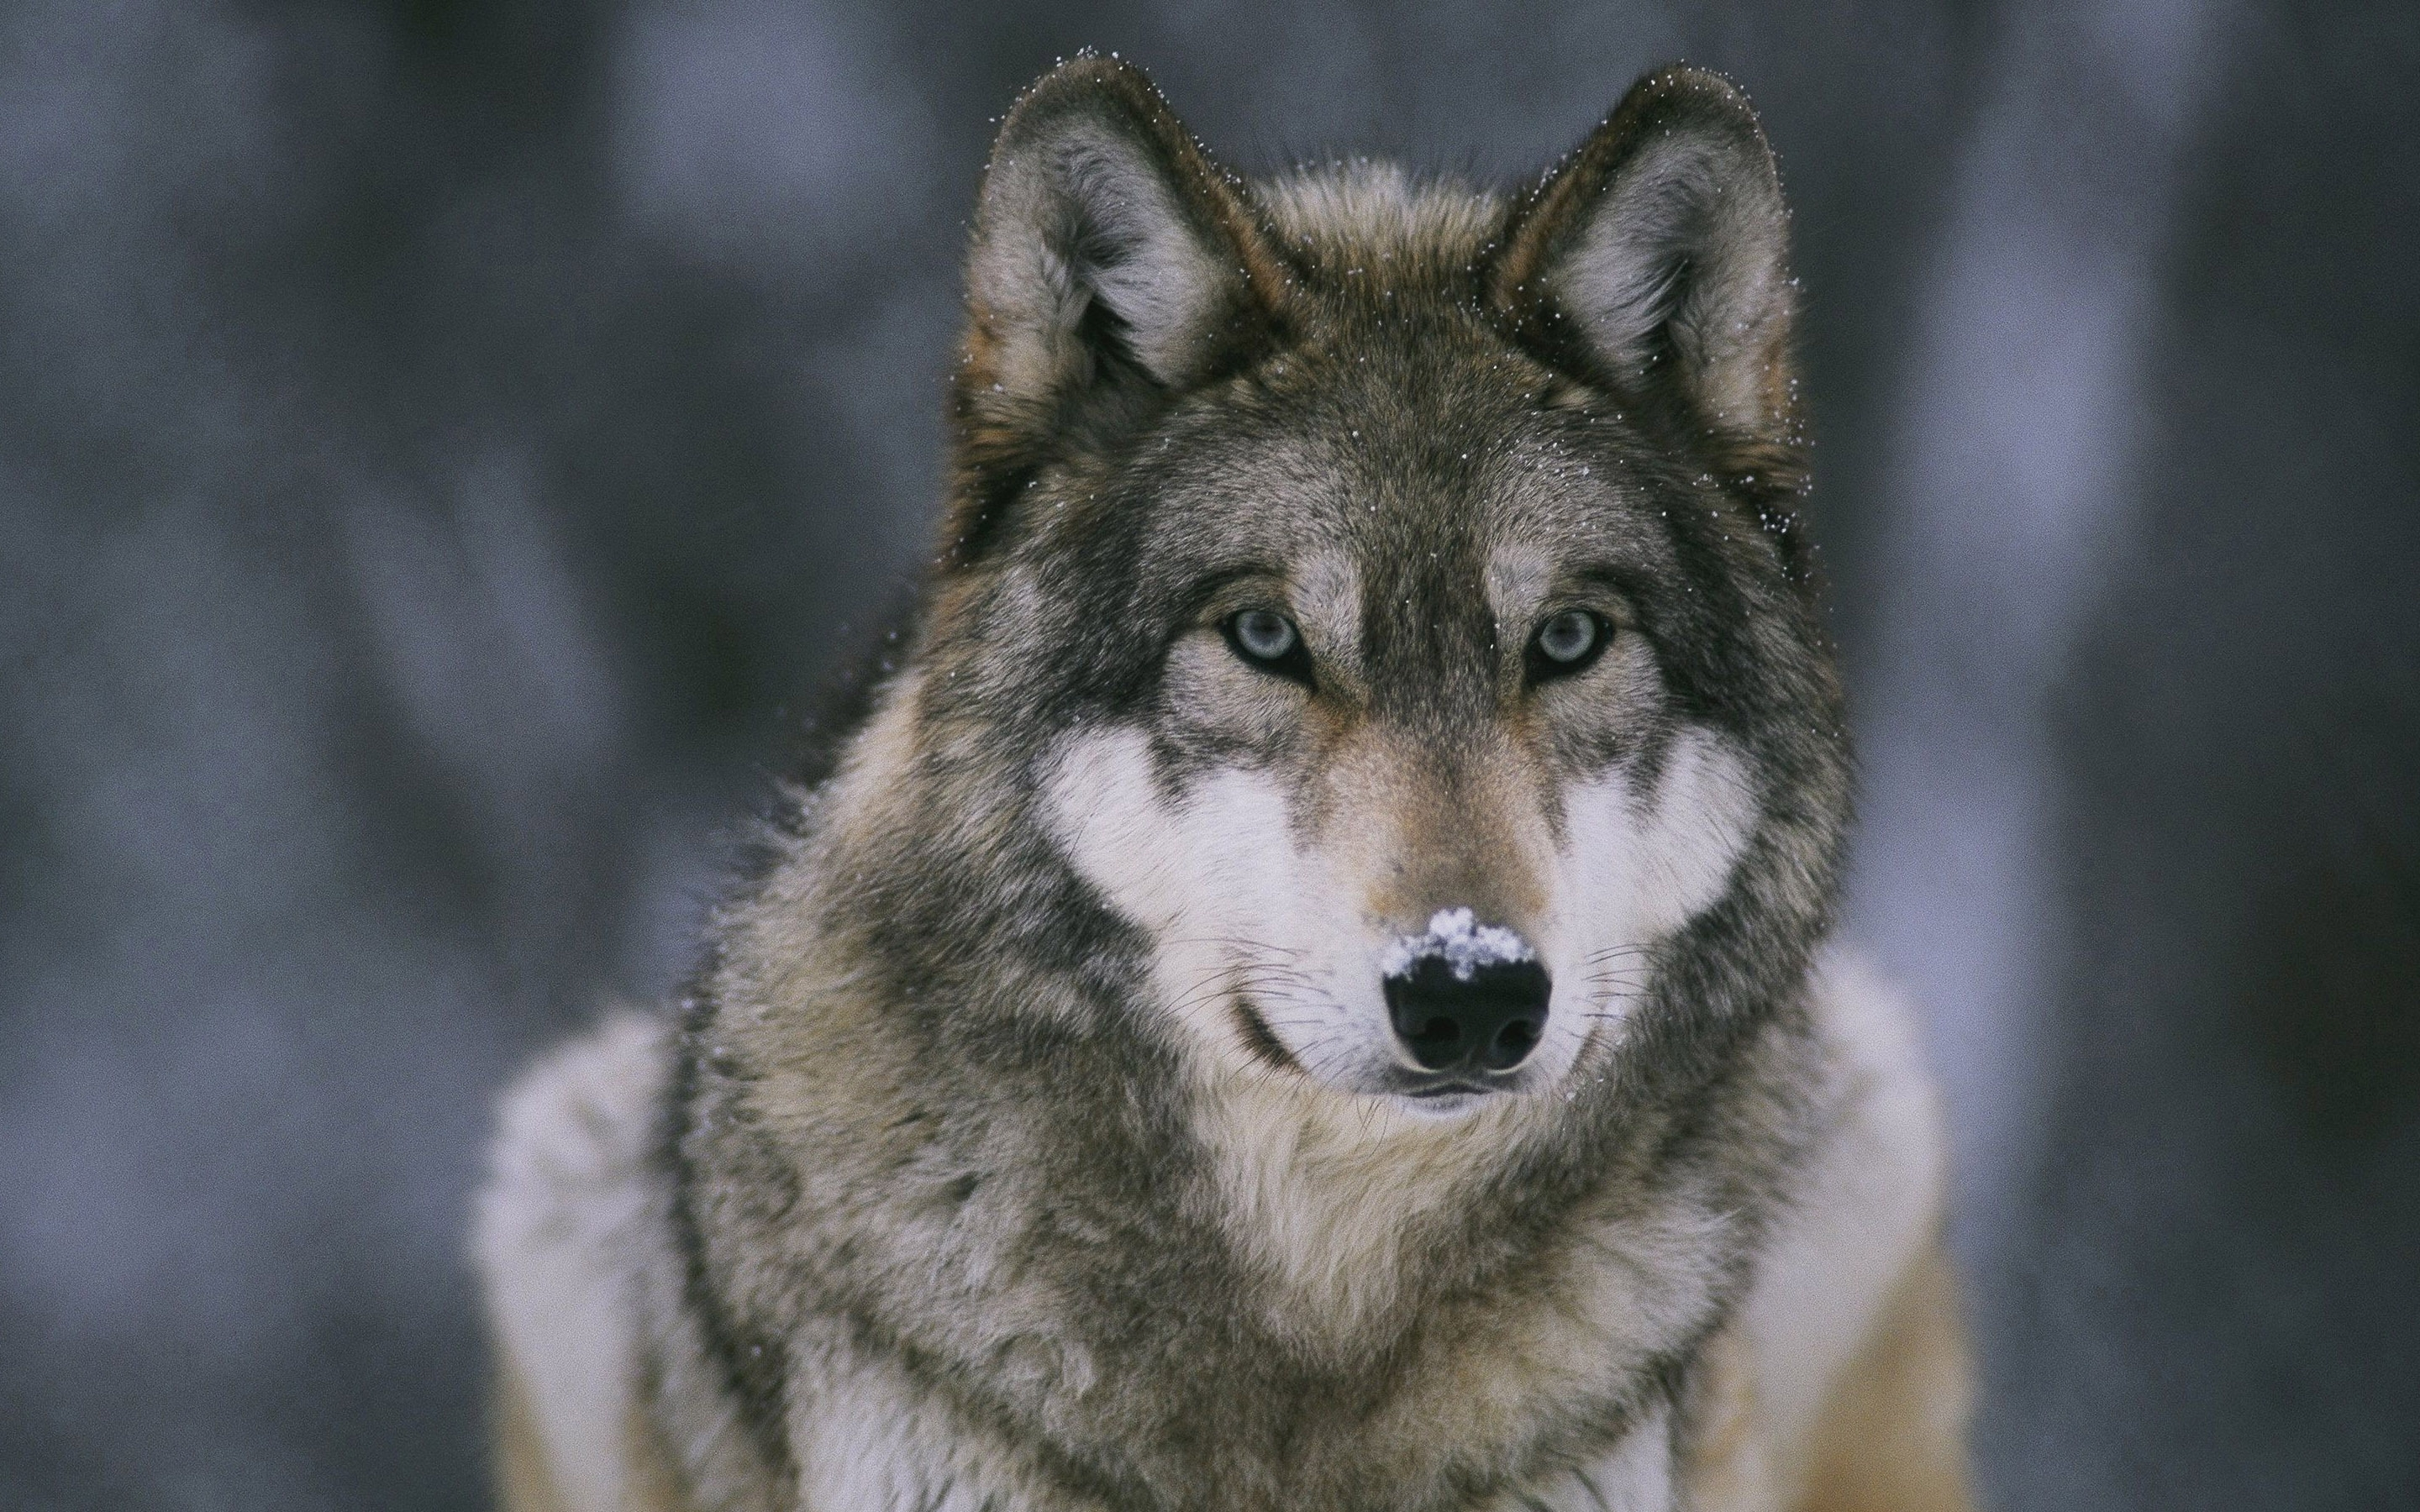 Hd wallpaper wolf - Wolf Image